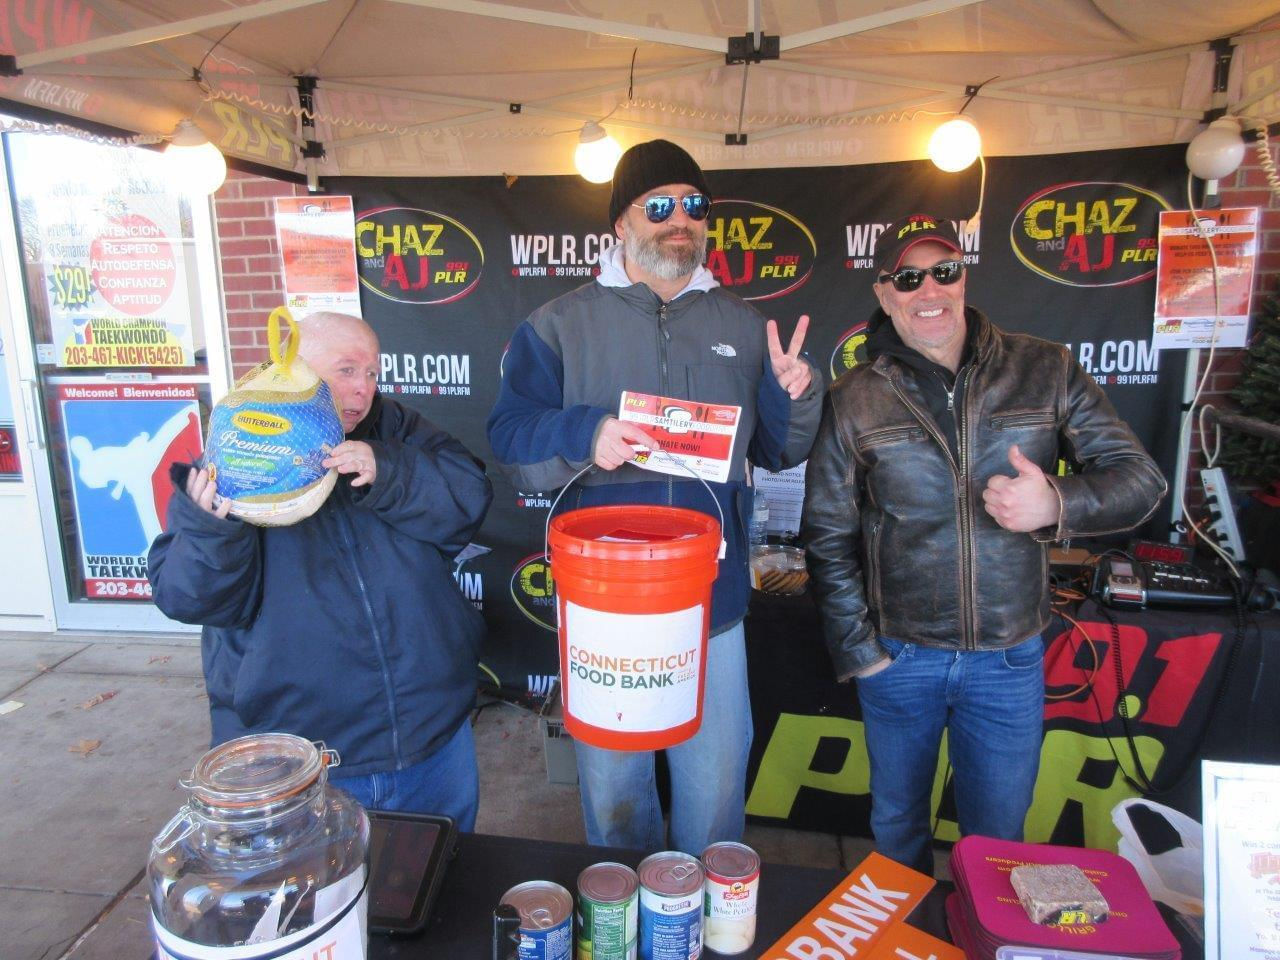 VIDEO: 99.1 PLR People's United Bank Sam Tilery Food Drive